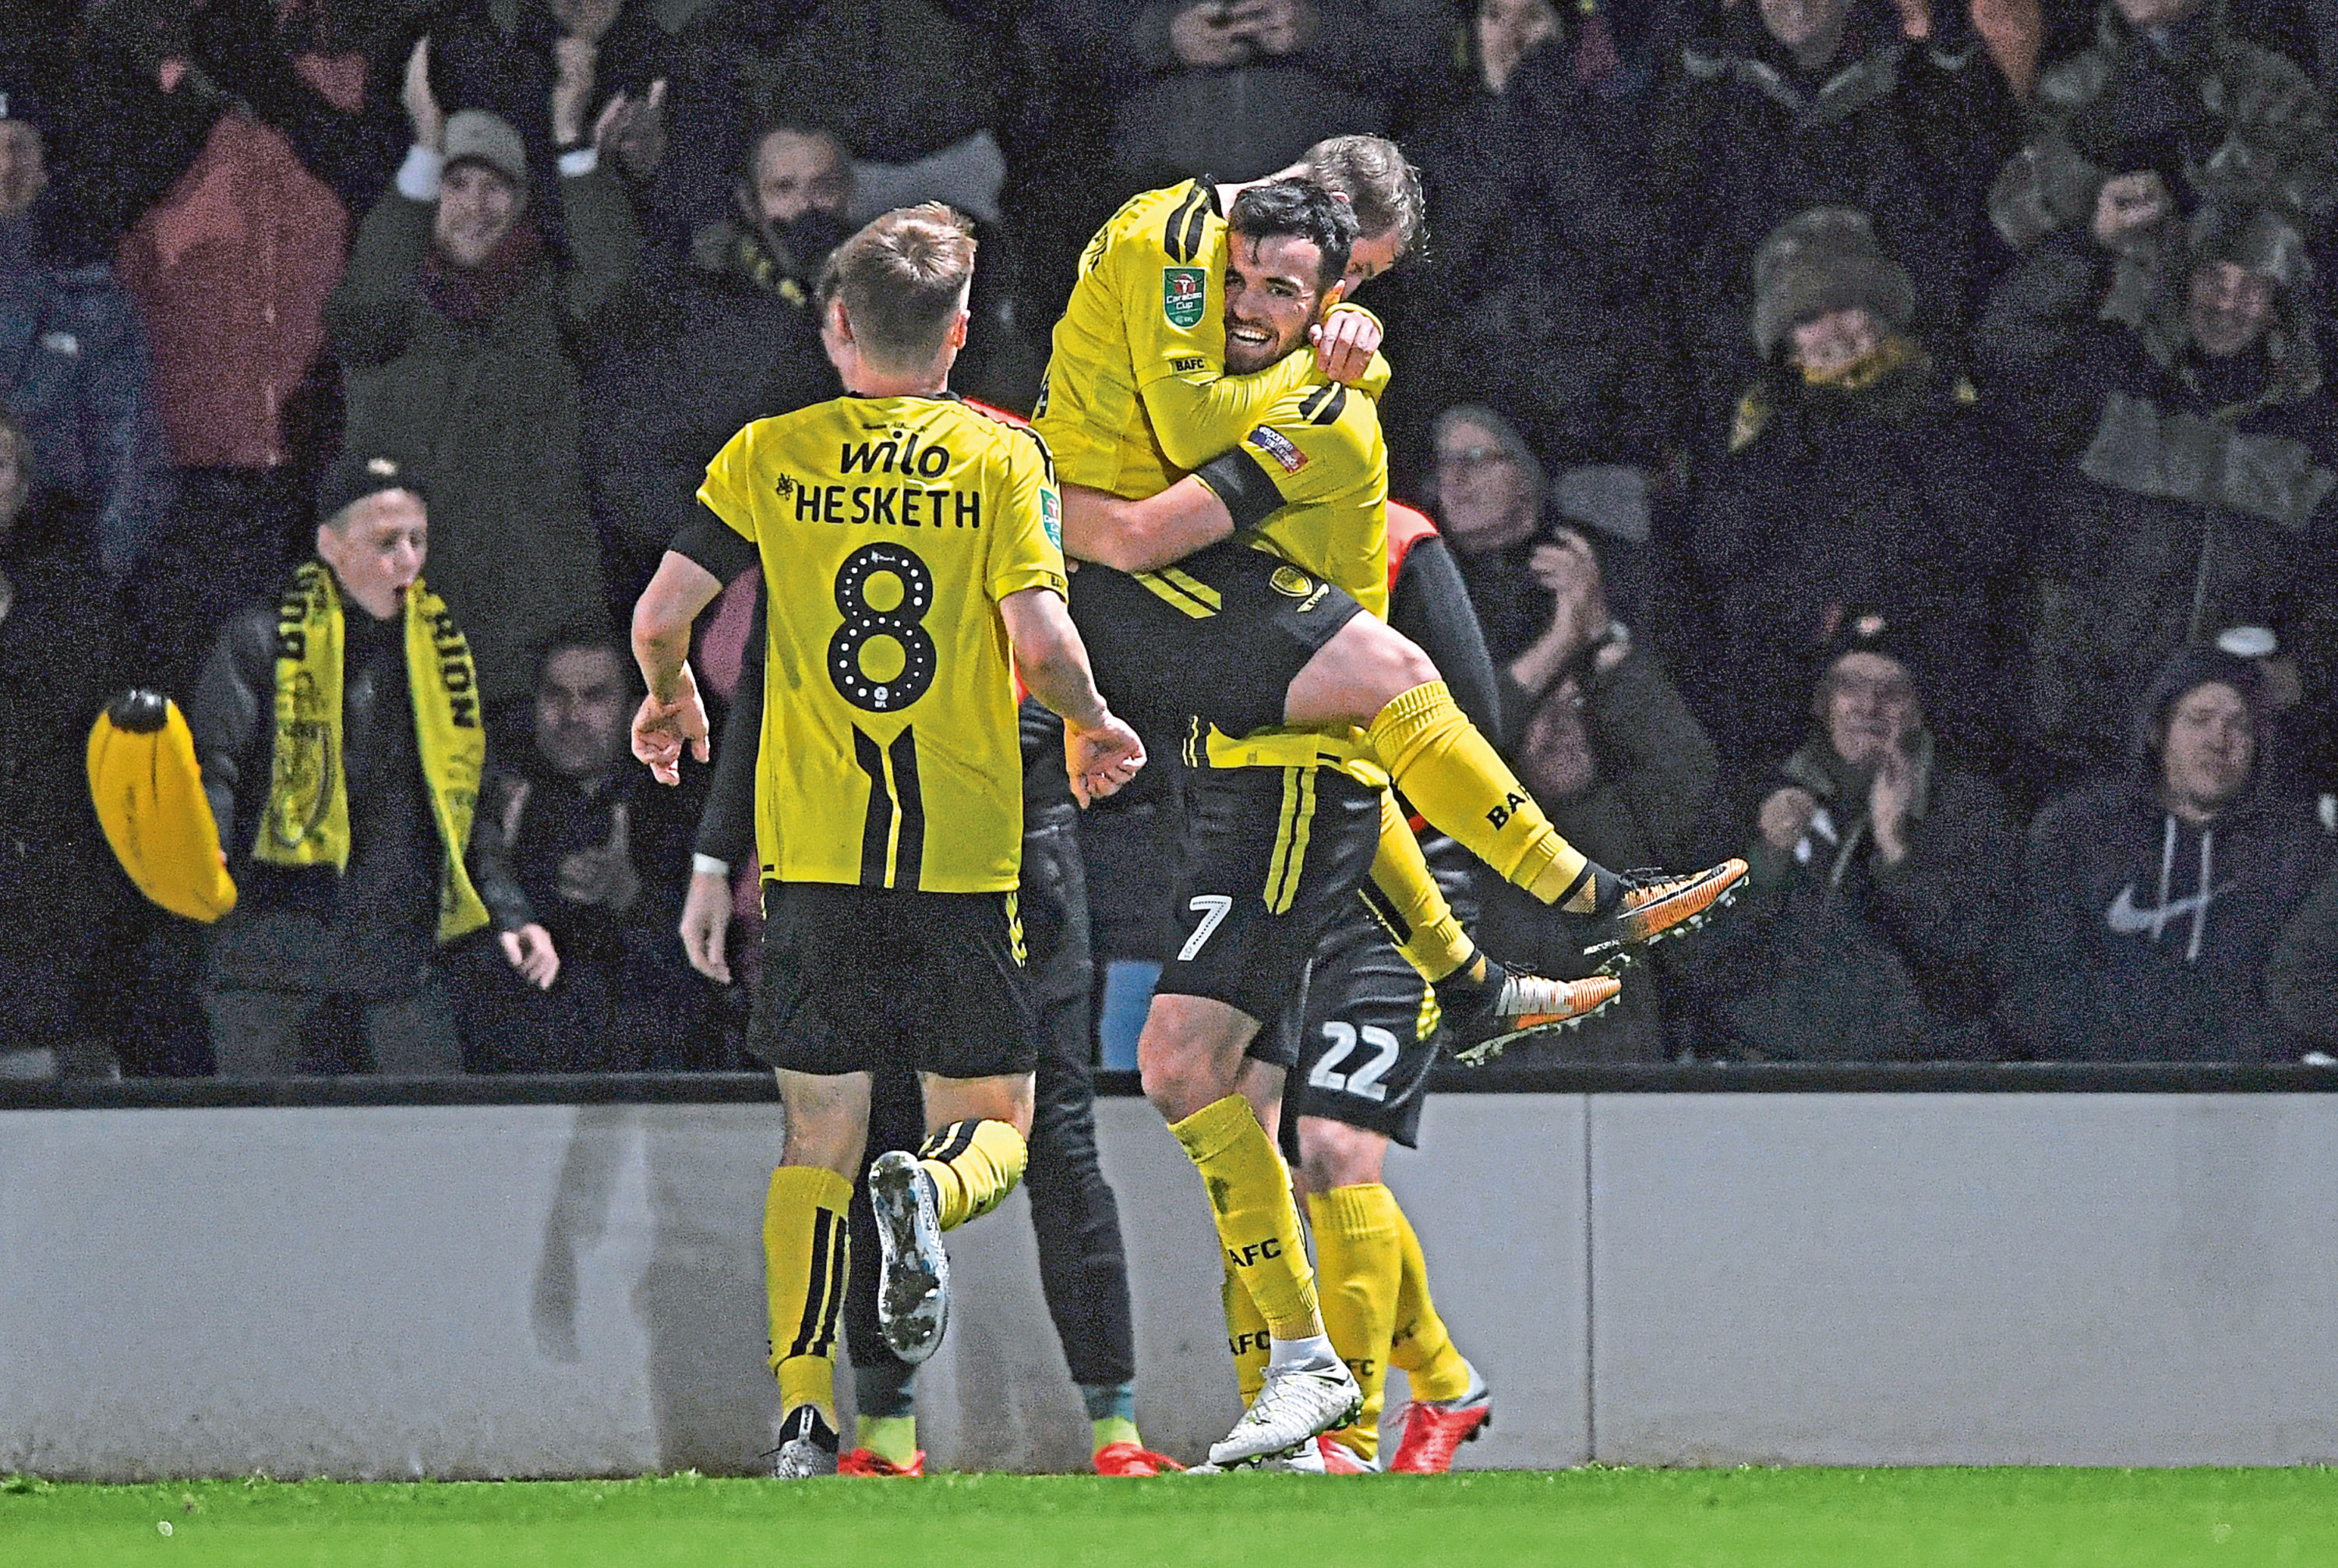 Scott Fraser of Burton Albion (7) celebrates after scoring his team's second goal against Nottingham Forest (Laurence Griffiths/Getty Images)